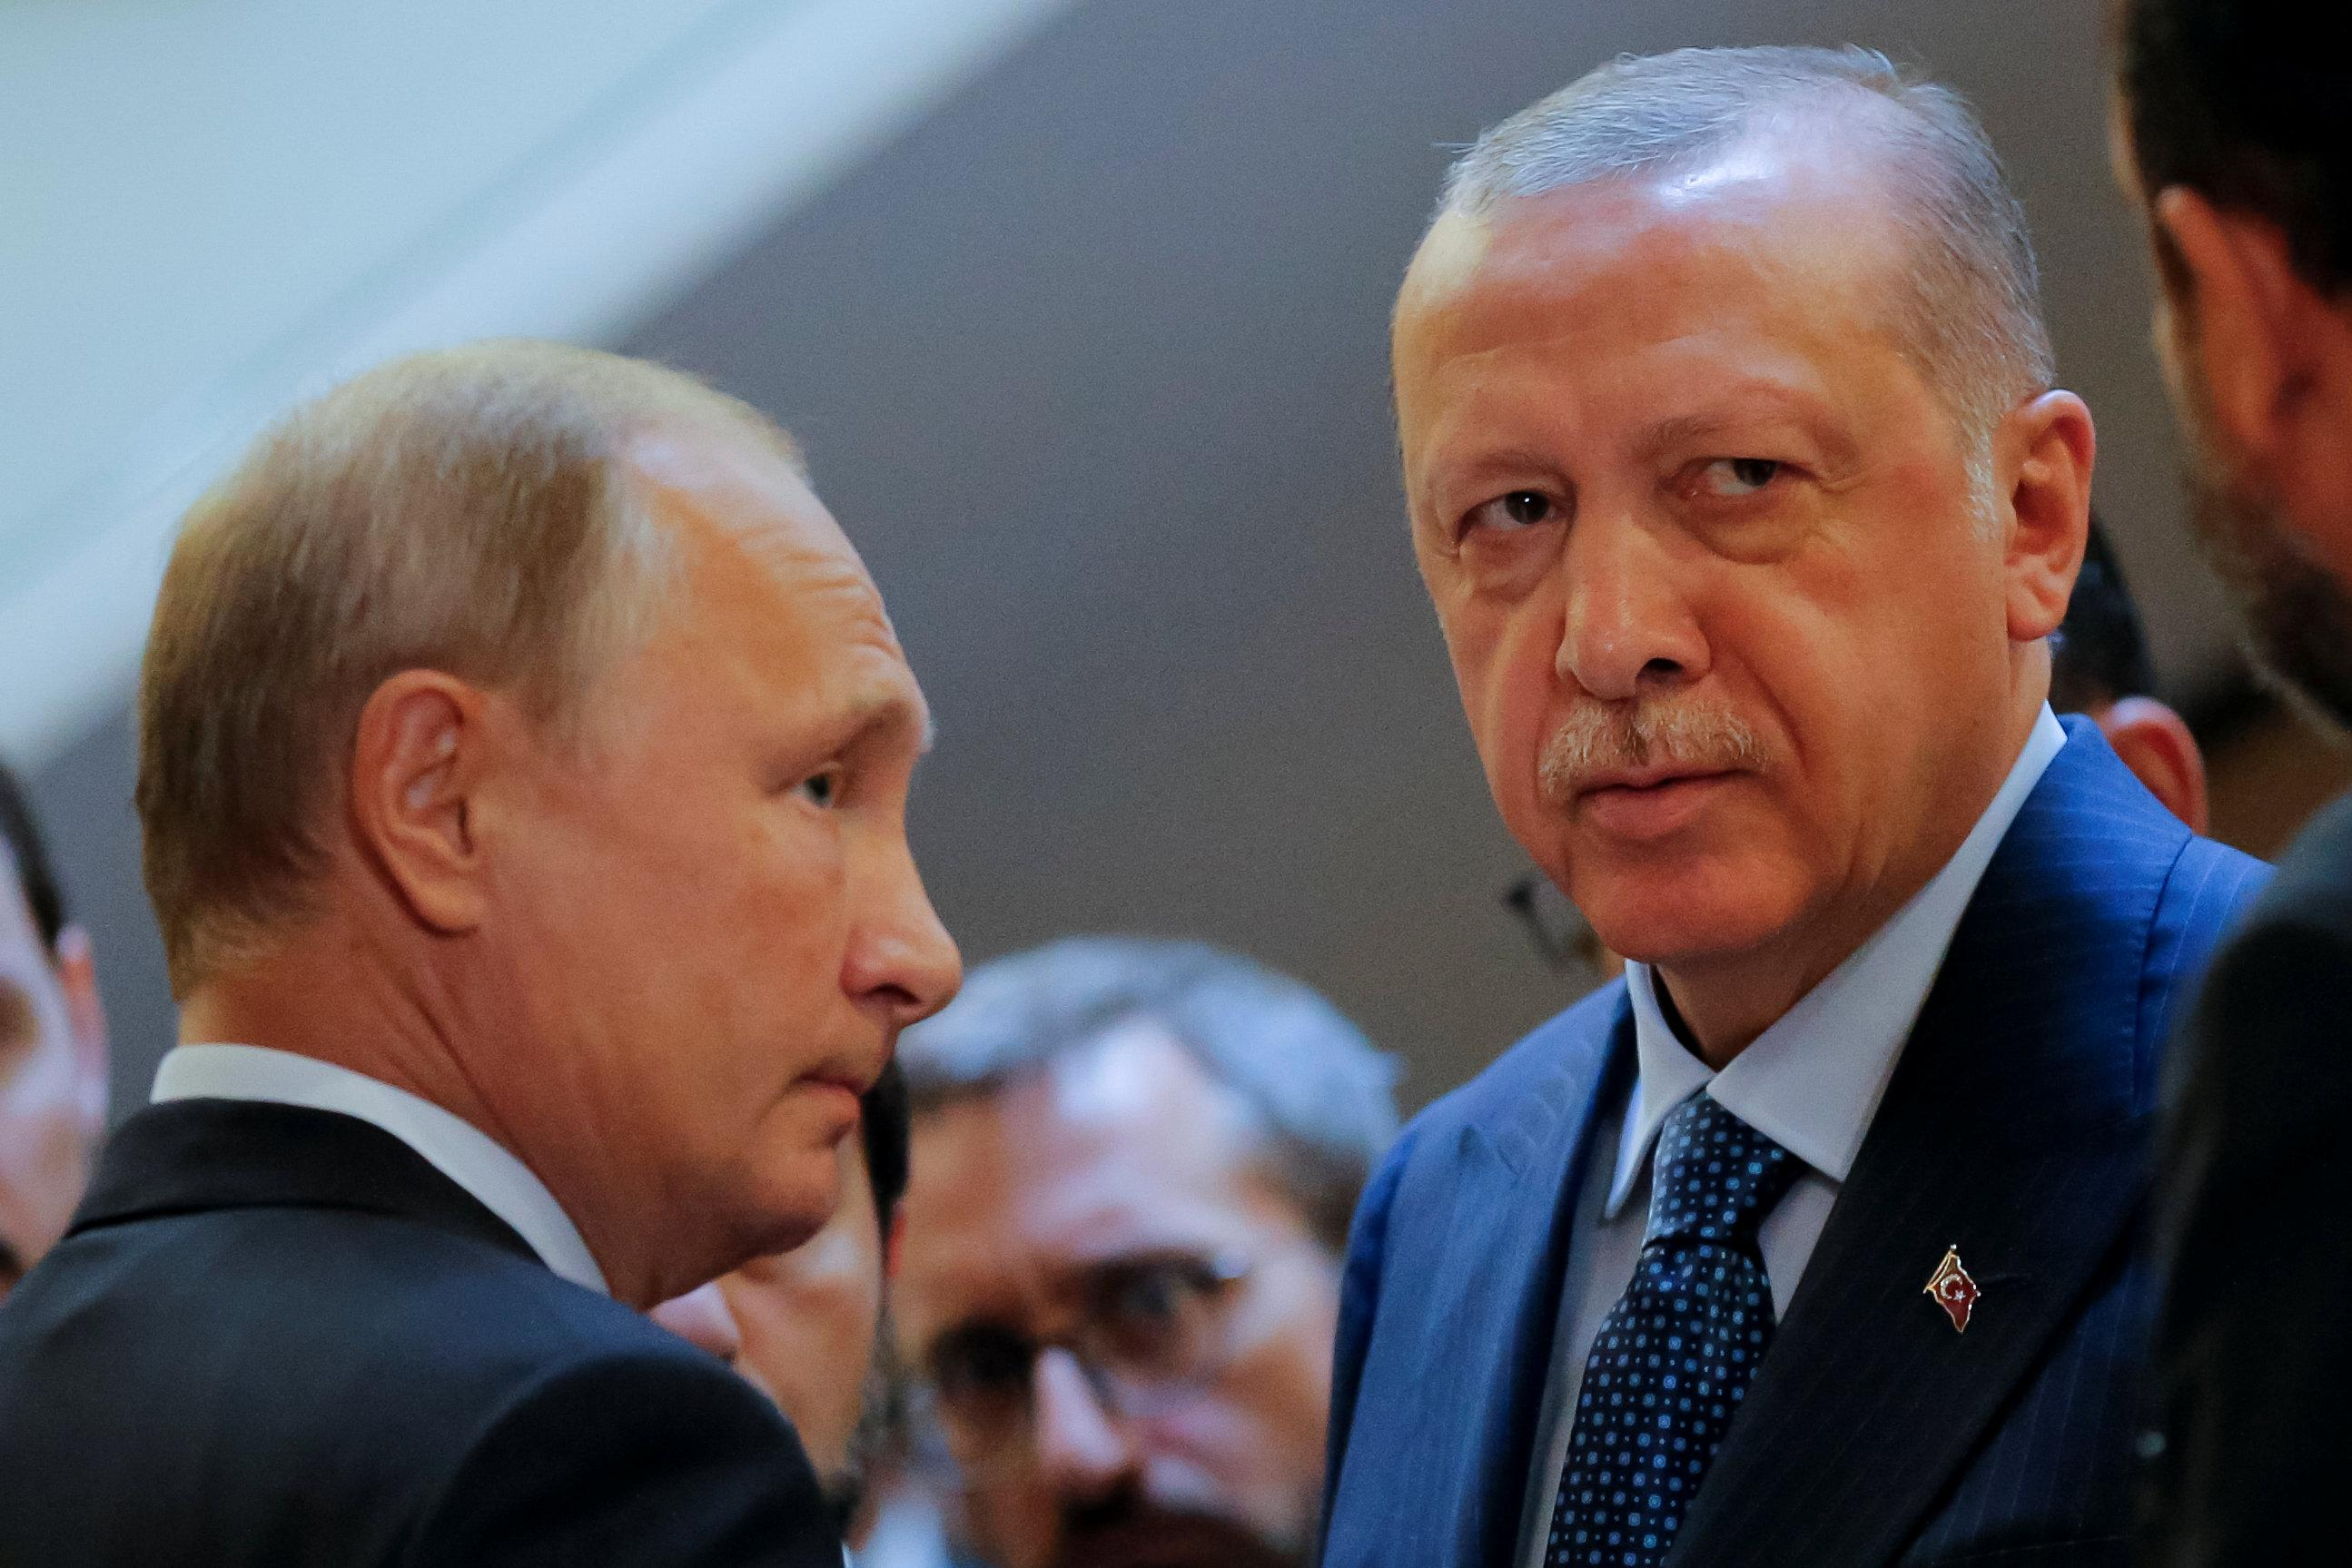 Russian President Vladimir Putin (L) meets with his Turkish counterpart Tayyip Erdogan in Sochi, Russia September 17, 2018. Alexander Zemlianichenko/Pool via